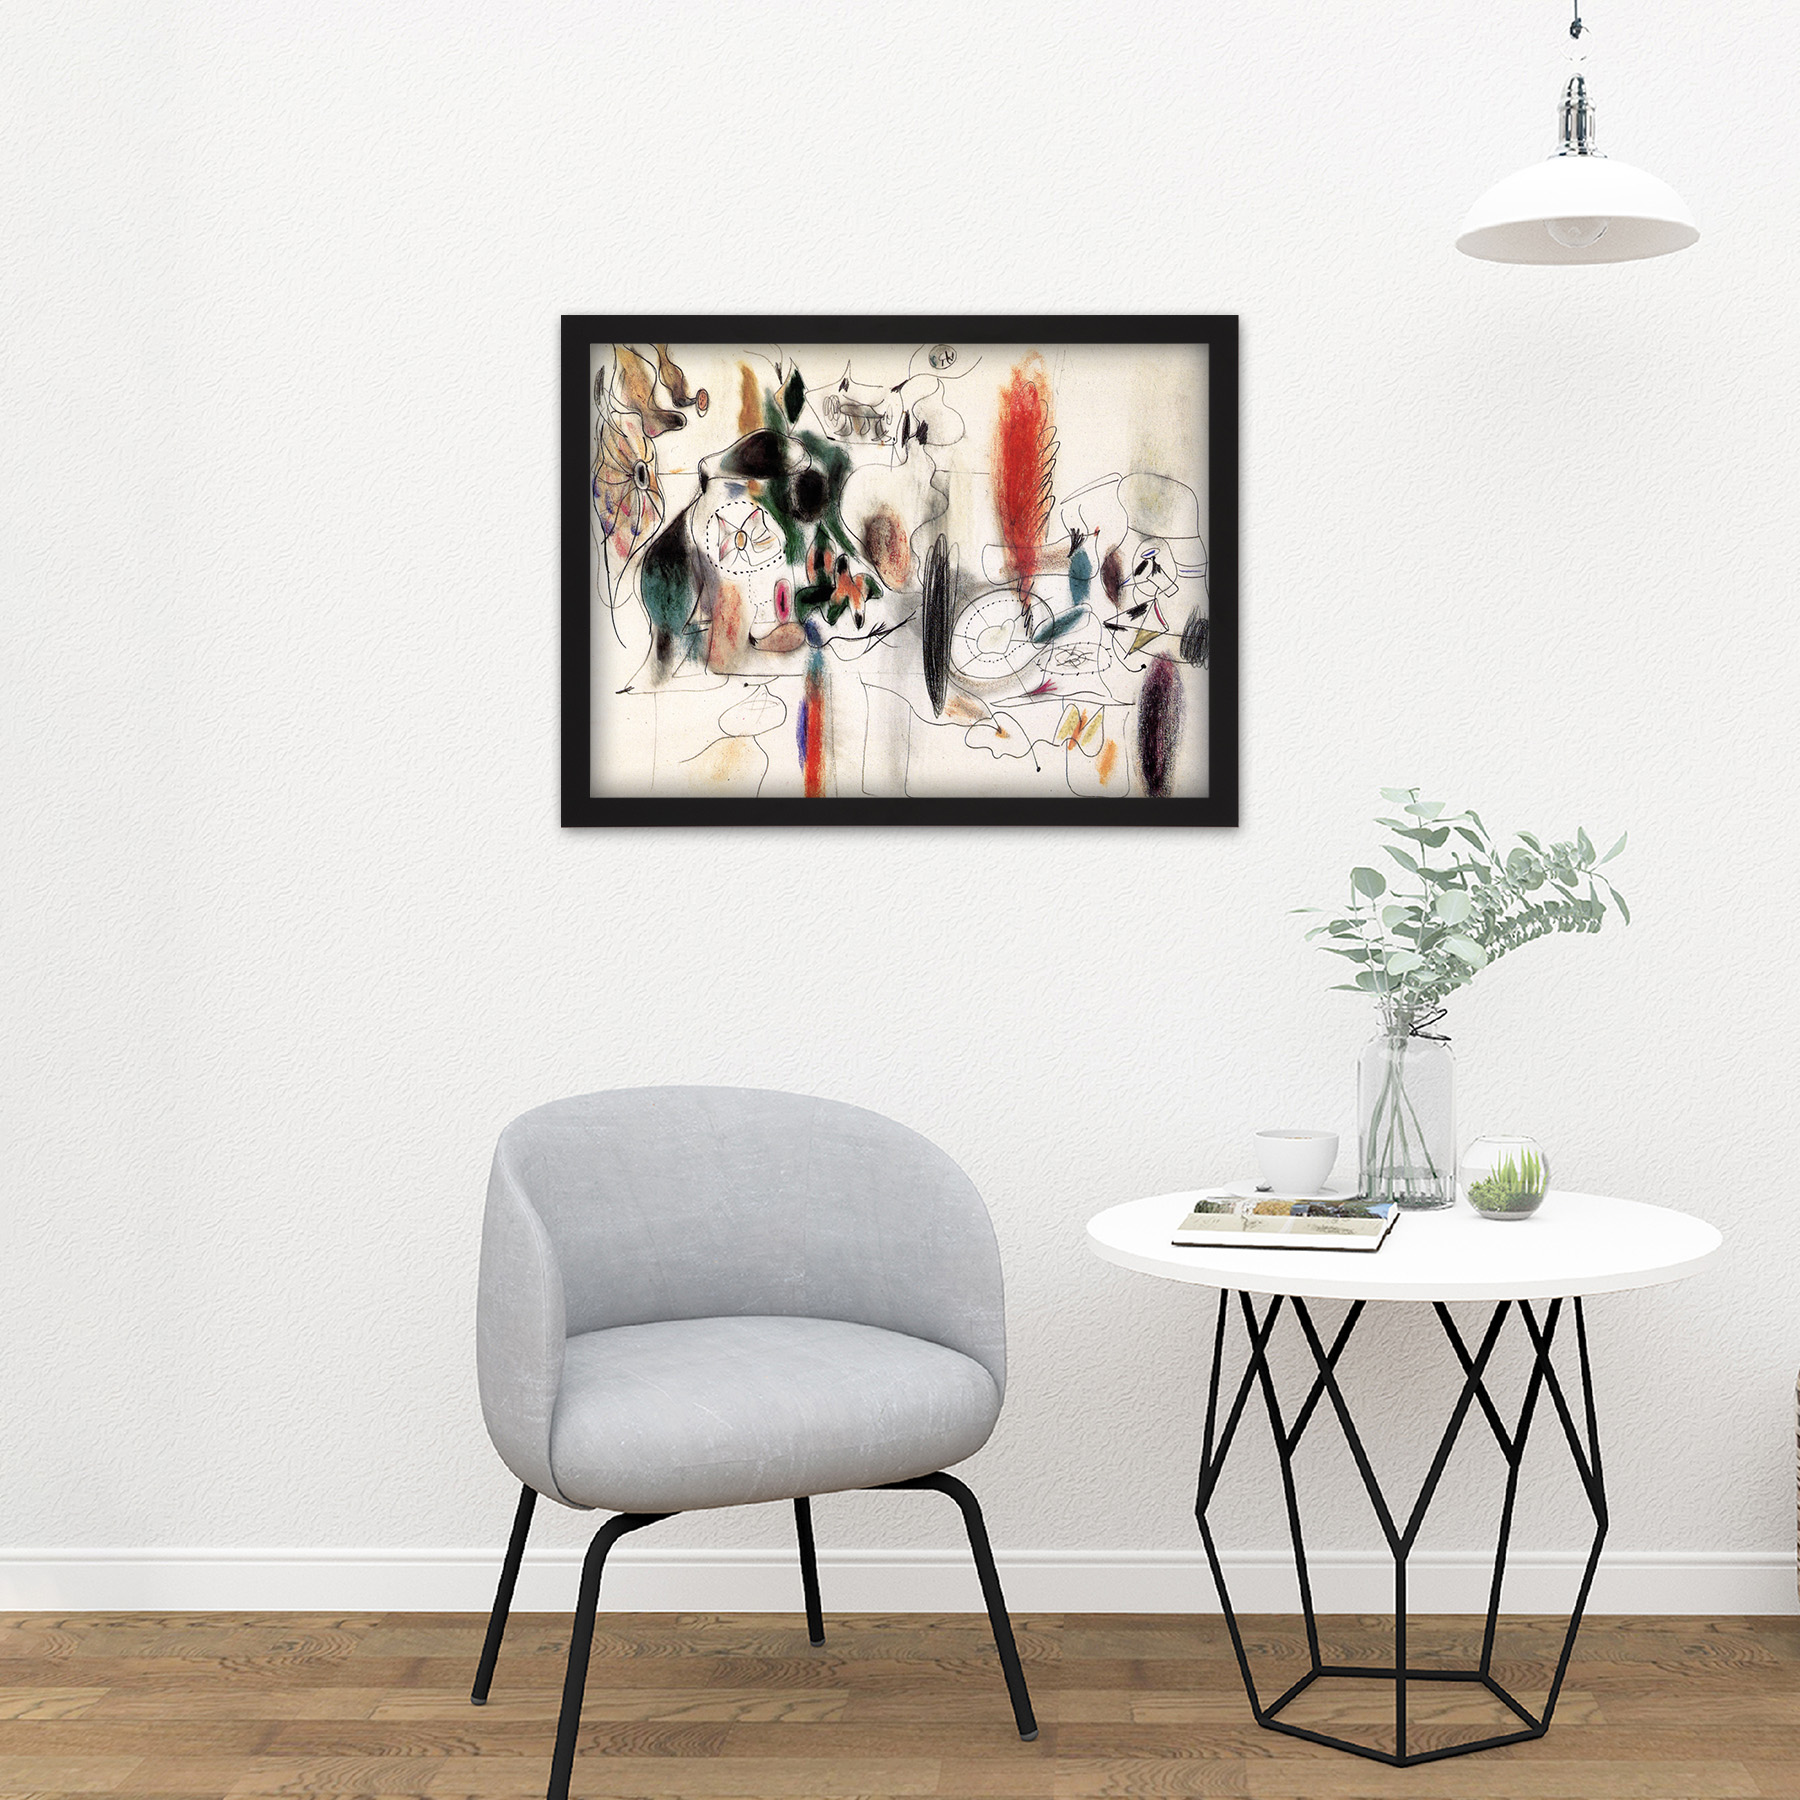 Gorky-Arshile-Composition-II-Expressionist-Painting-Large-Framed-Art-Print thumbnail 8